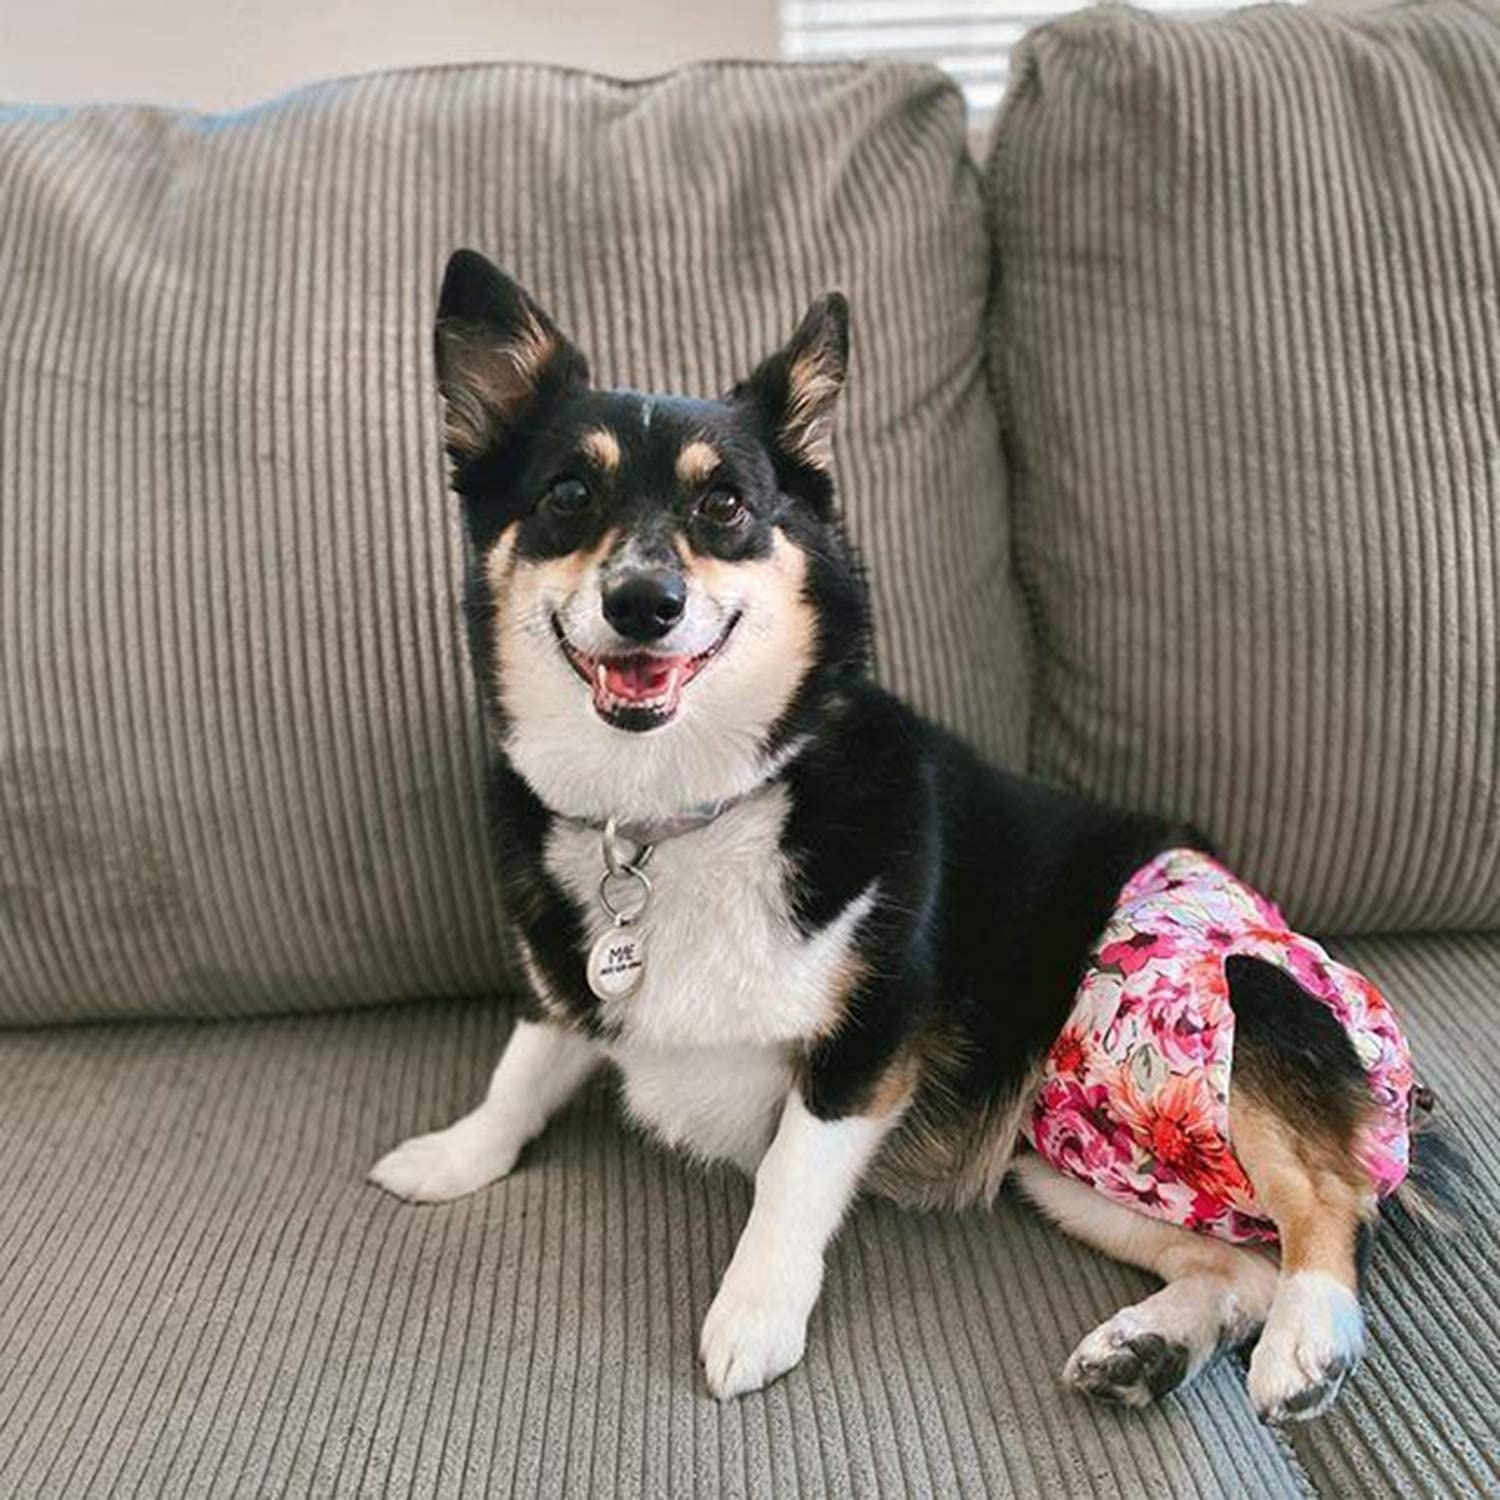 A dog wearing a floral doggy diaper